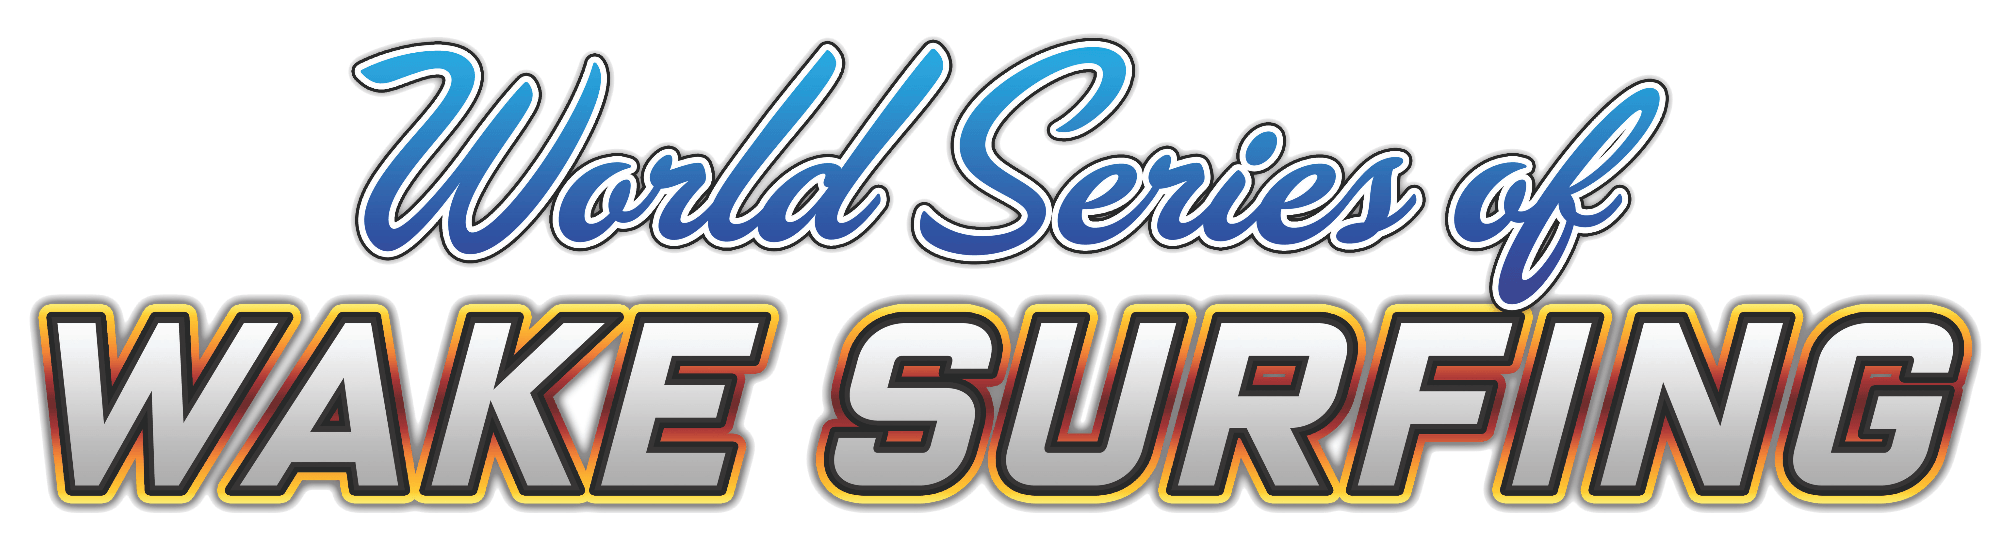 World Series of Wake Surfing Logo Transparant_10